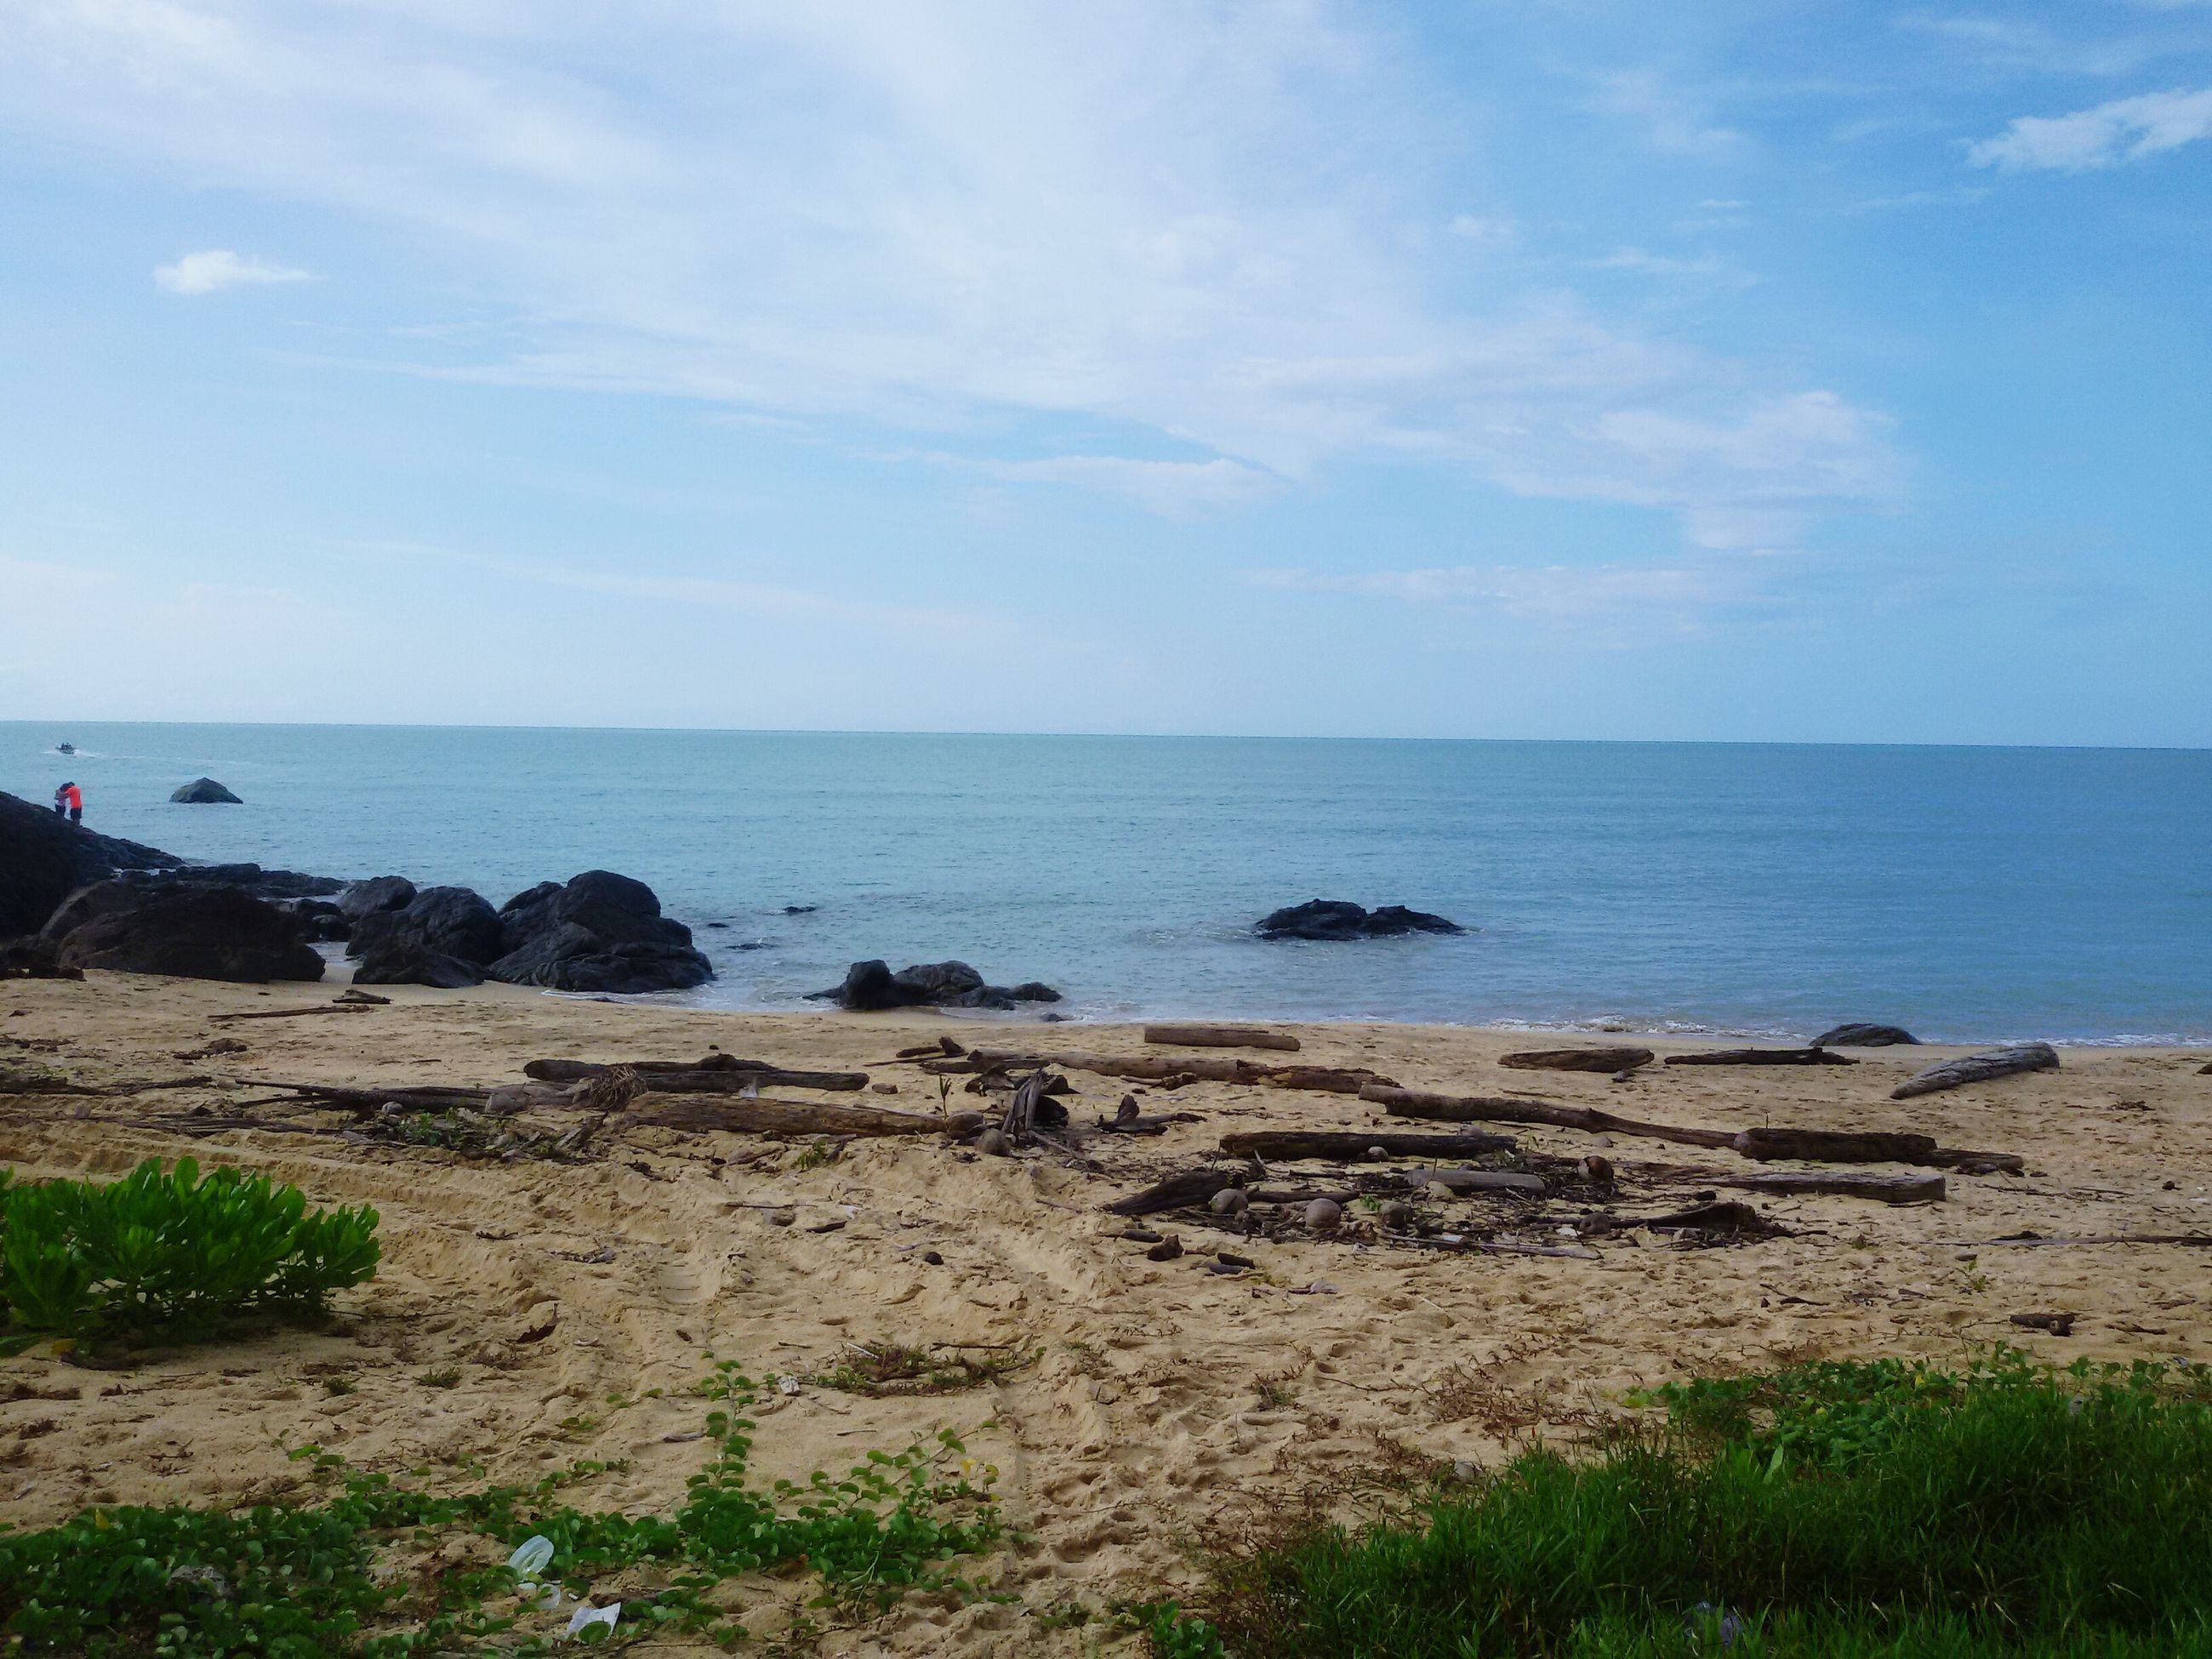 sea, horizon over water, beach, water, tranquil scene, sky, tranquility, shore, scenics, beauty in nature, nature, sand, idyllic, coastline, grass, blue, rock - object, day, remote, cloud - sky